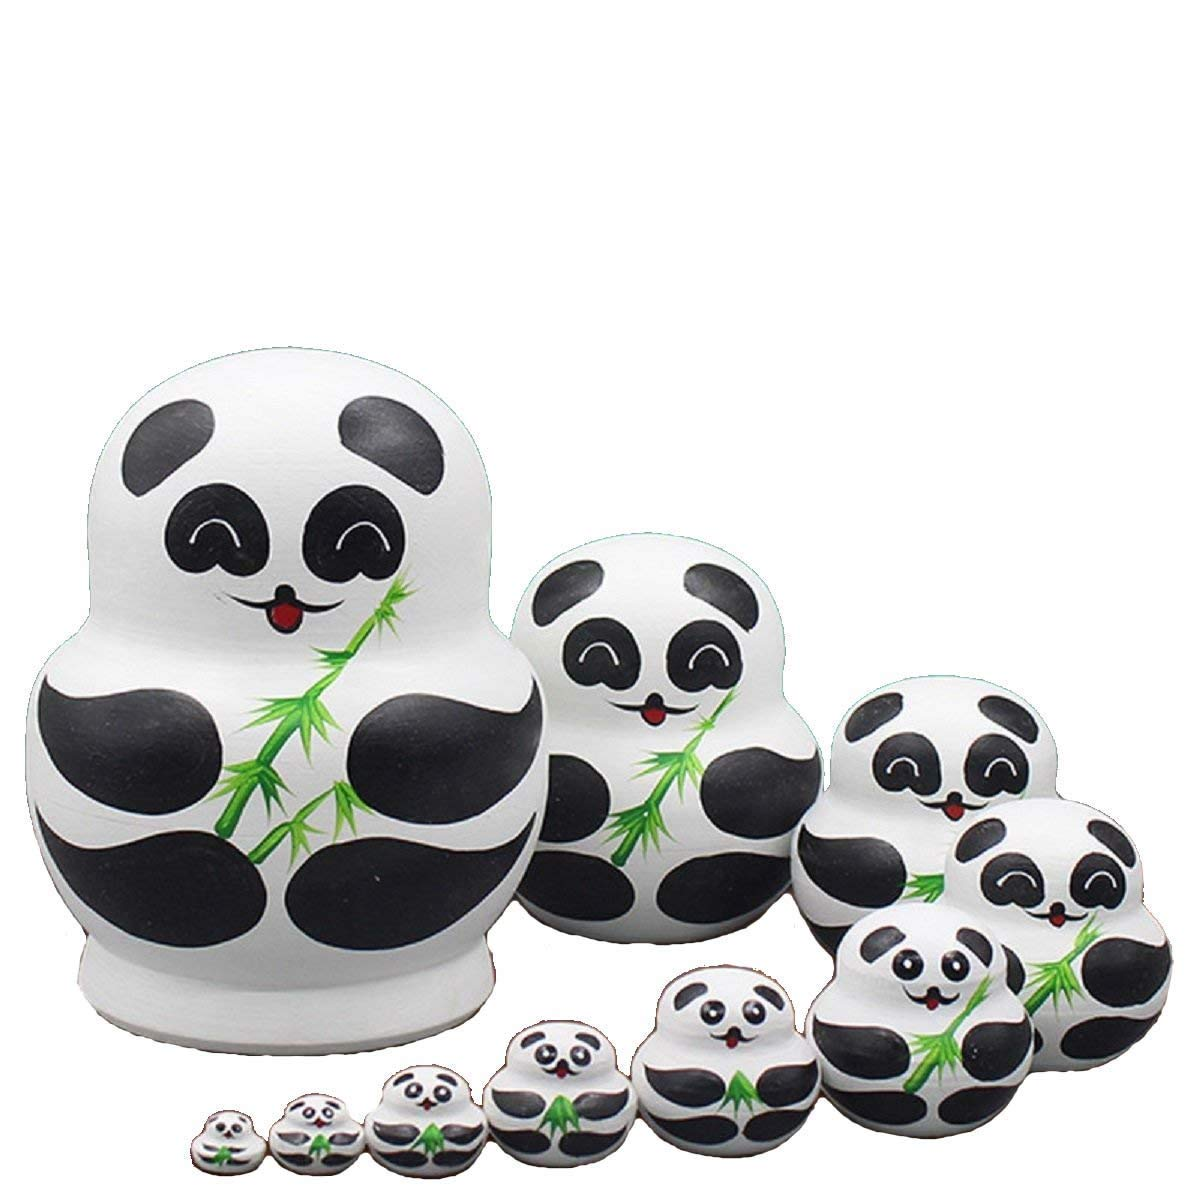 LK King&Light 10pcs Pandas Russian Nesting Dolls by LK